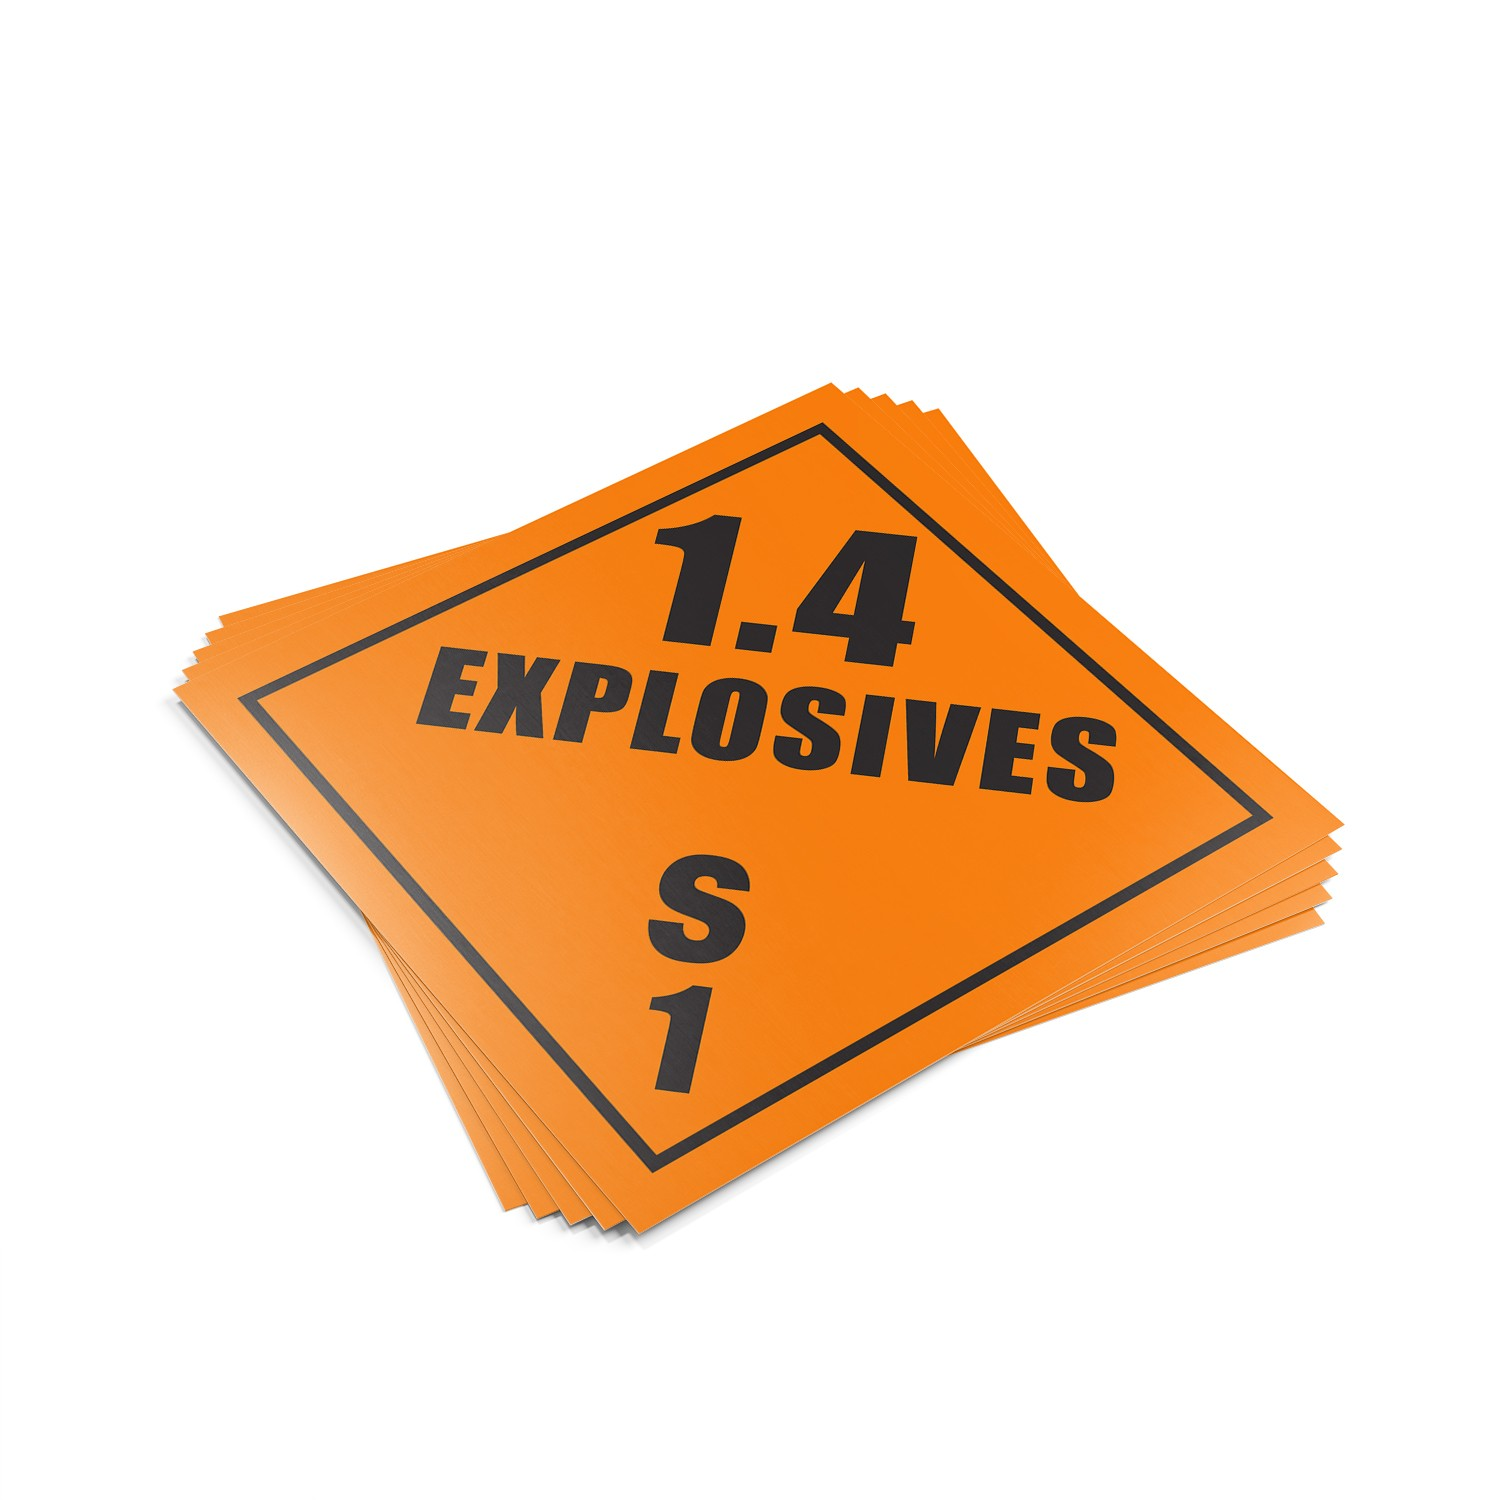 "TOTALPACK® 10 3/4 x 10 3/4"" - Placard ""Explosives 1.4 S"" 25 Units"